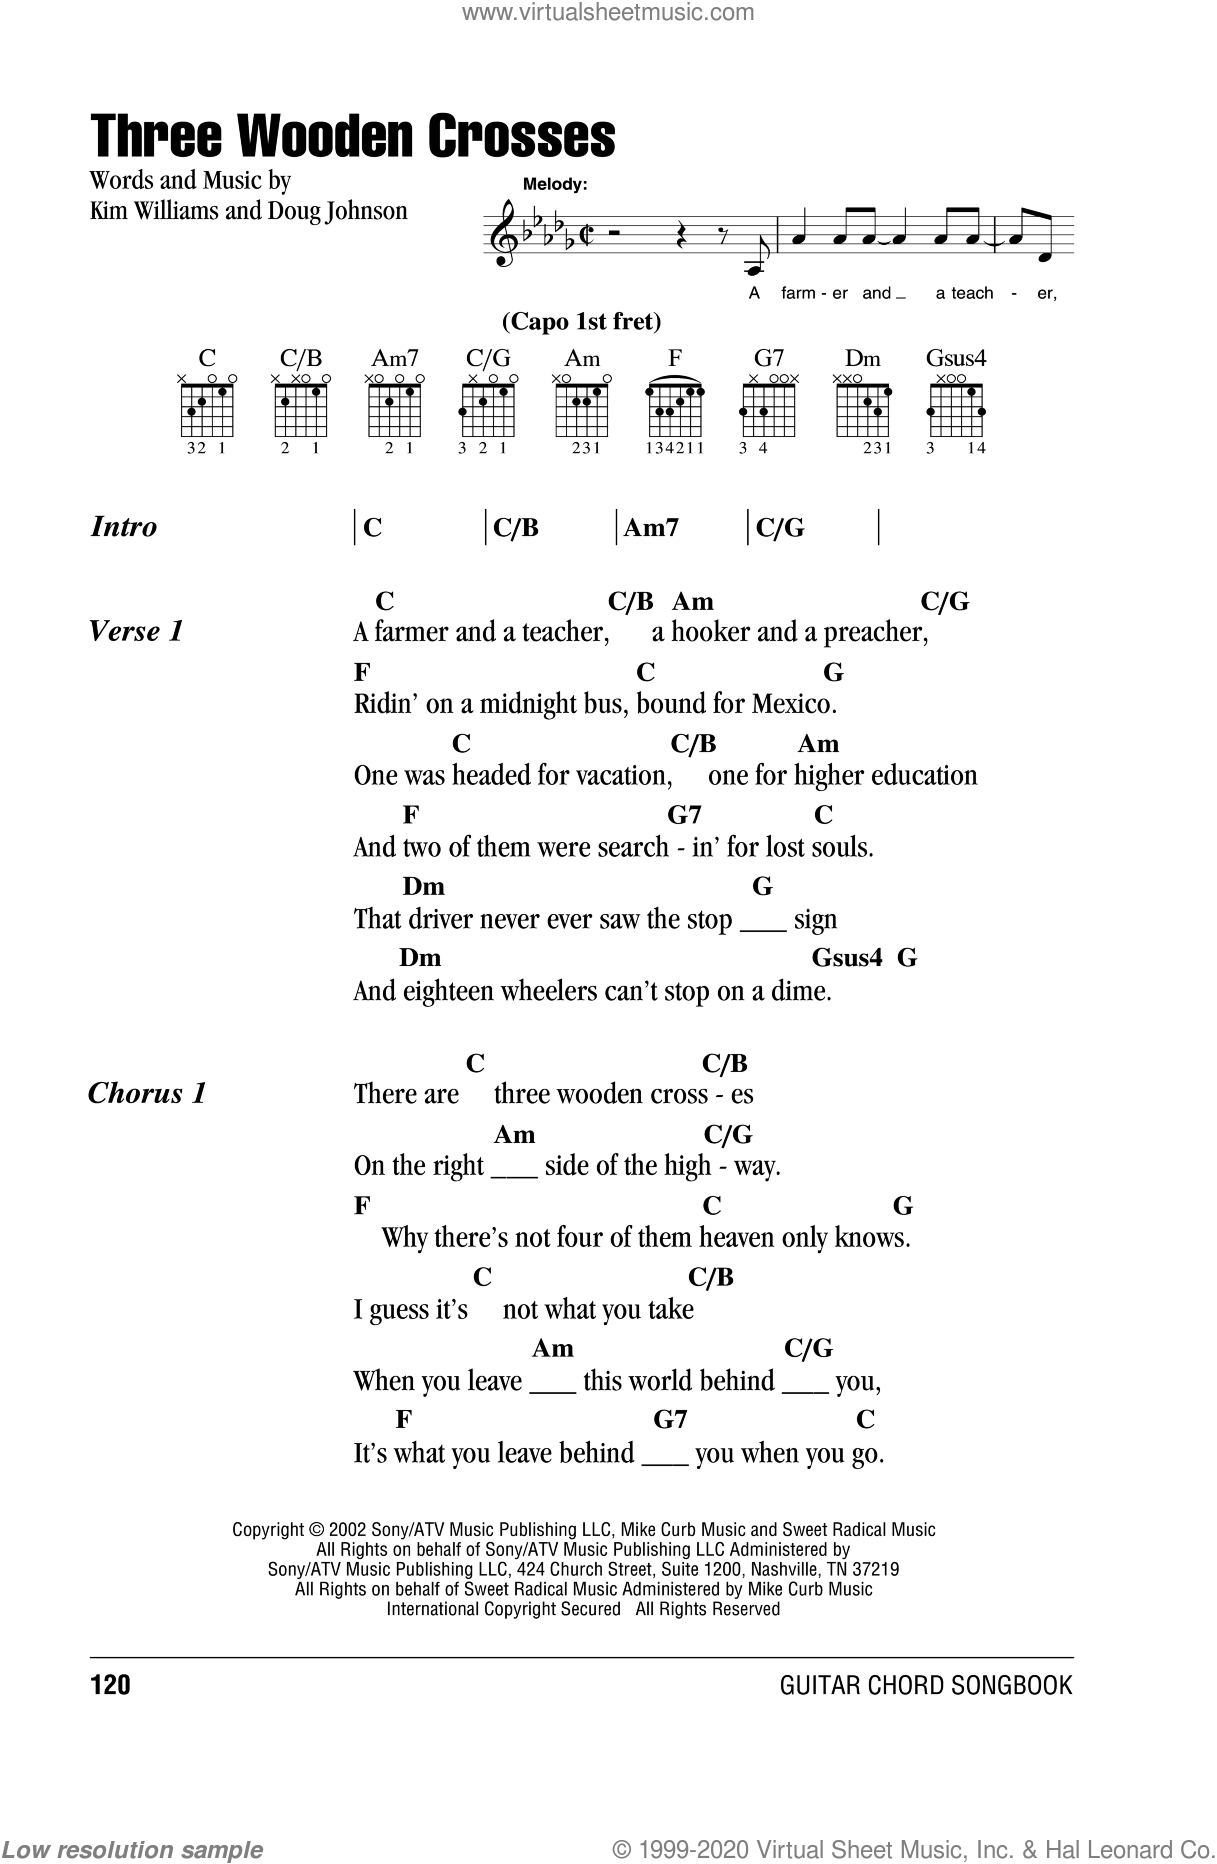 Three Wooden Crosses sheet music for guitar (chords) by Randy Travis, Doug Johnson and Kim Williams, intermediate skill level